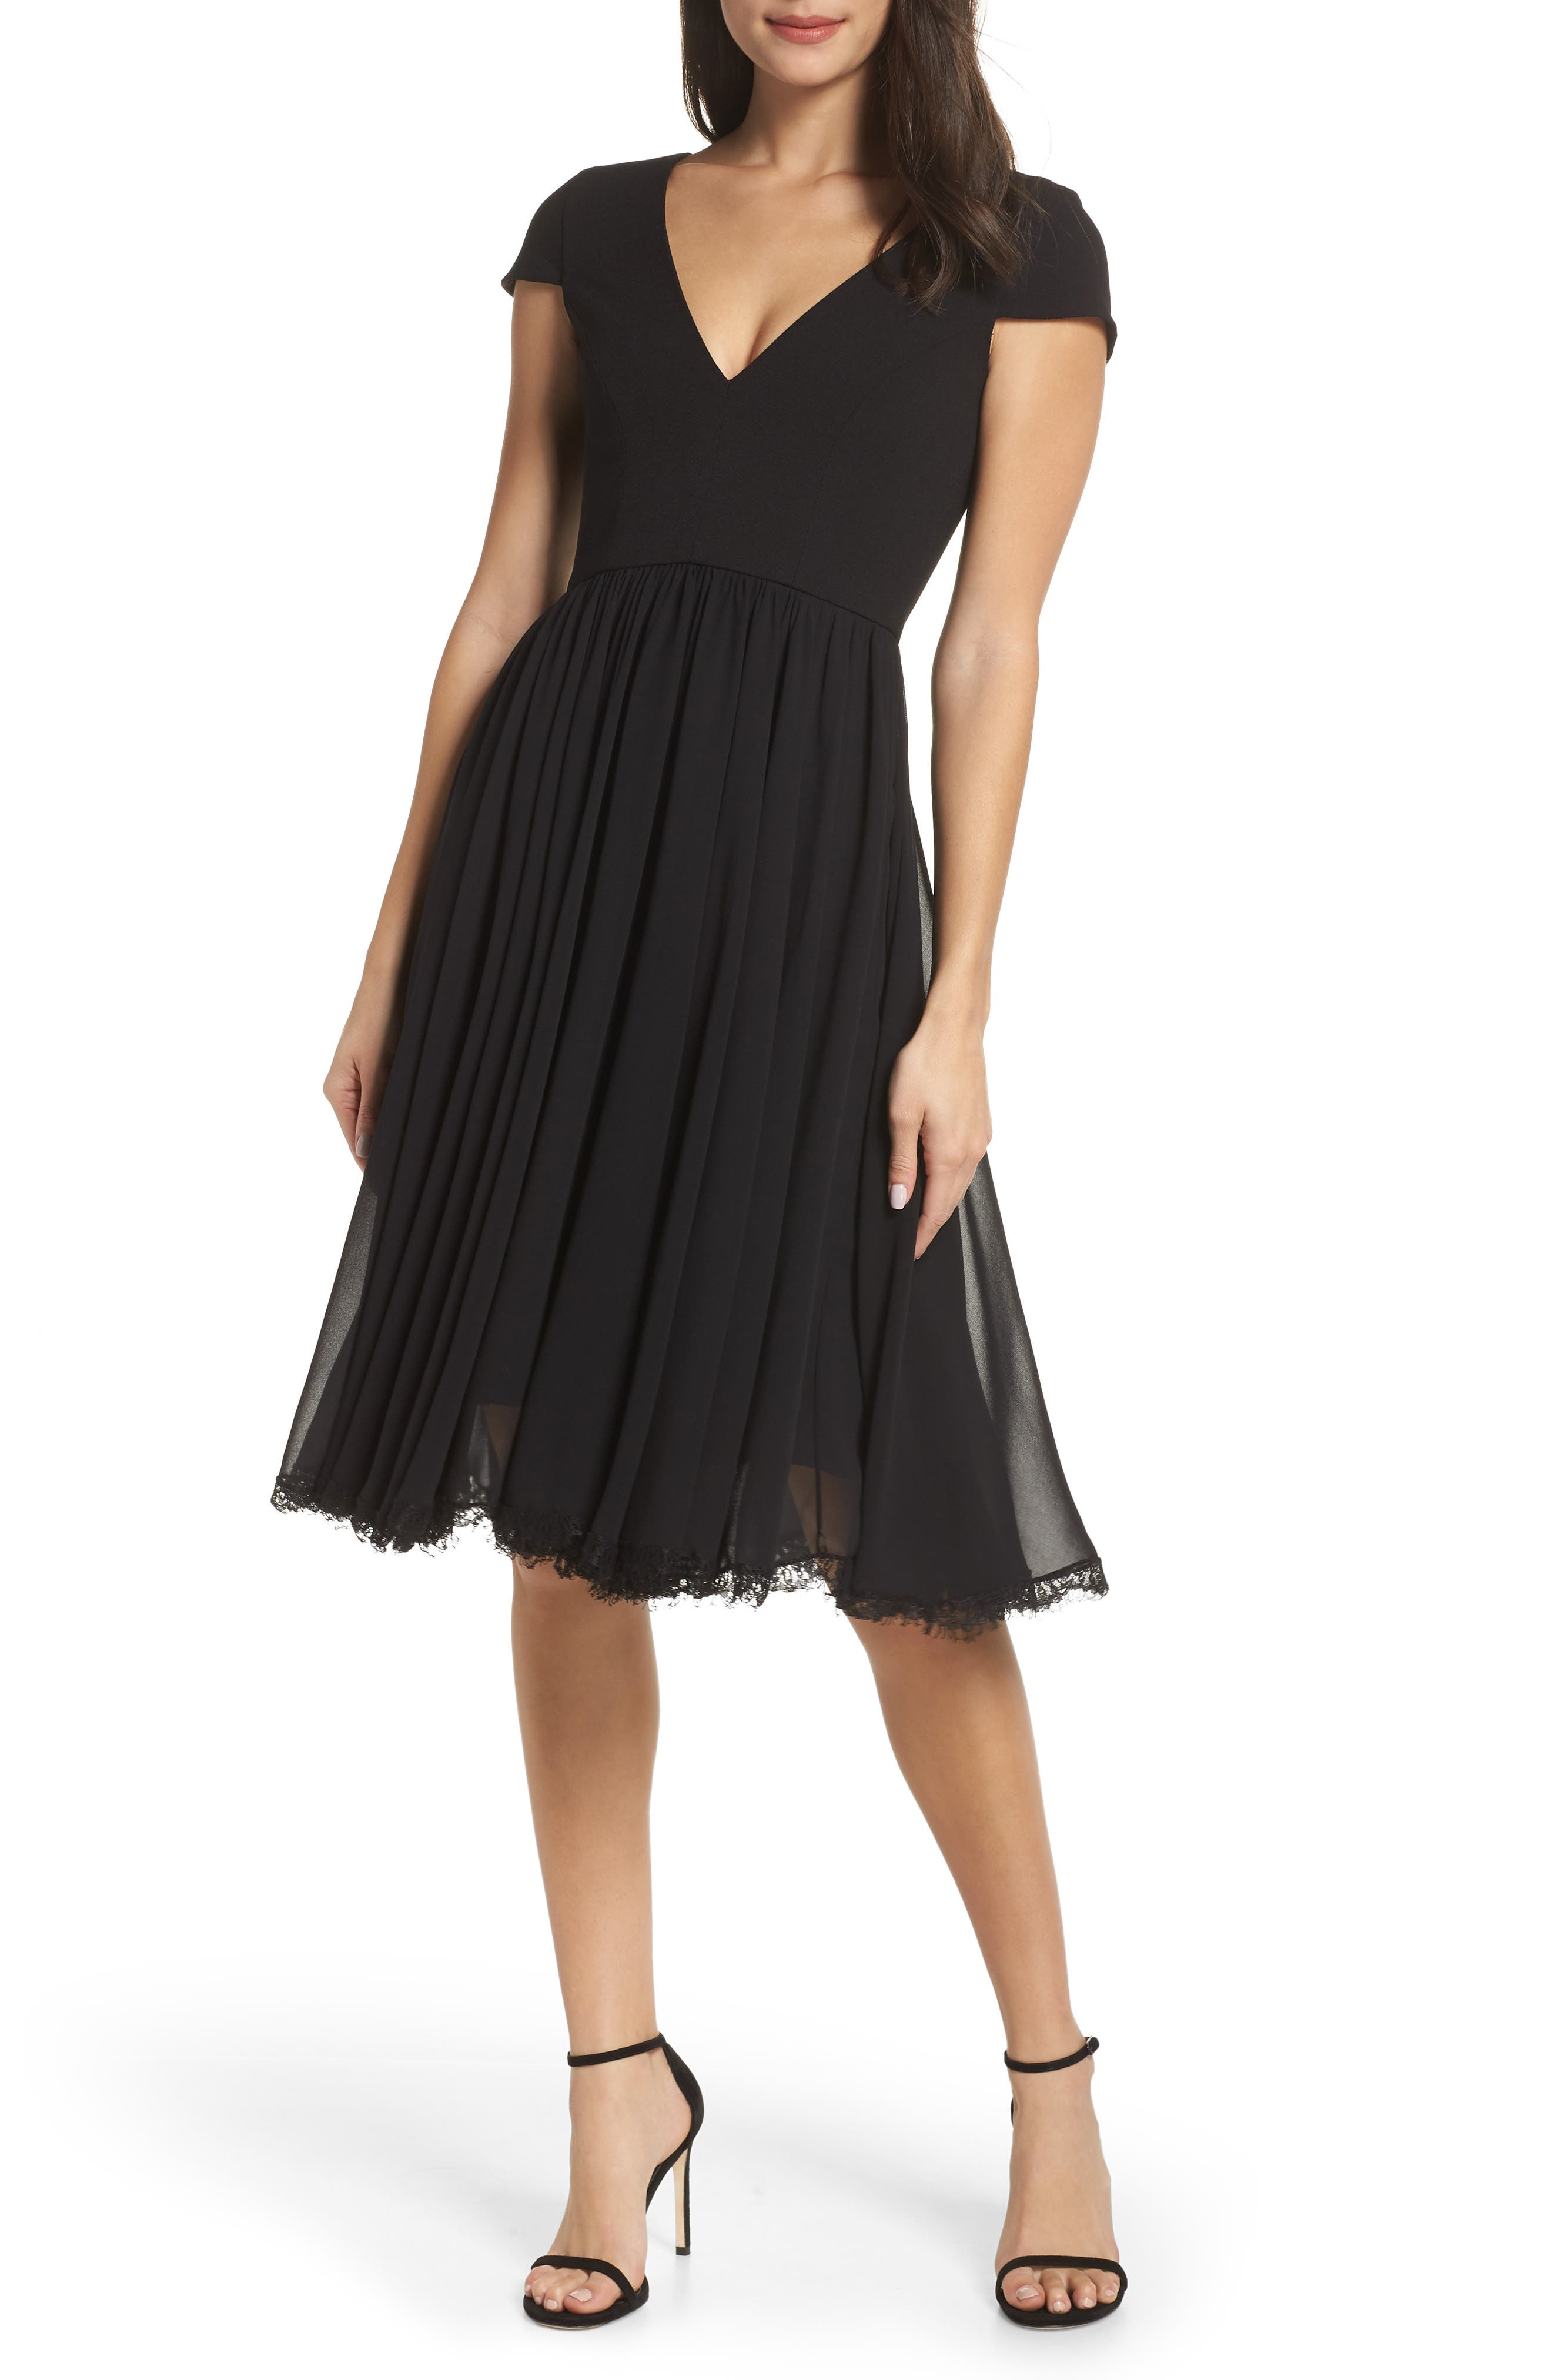 DRESS THE POPULATION Corey Chiffon Fit & Flare Dress, Main, color, BLACK